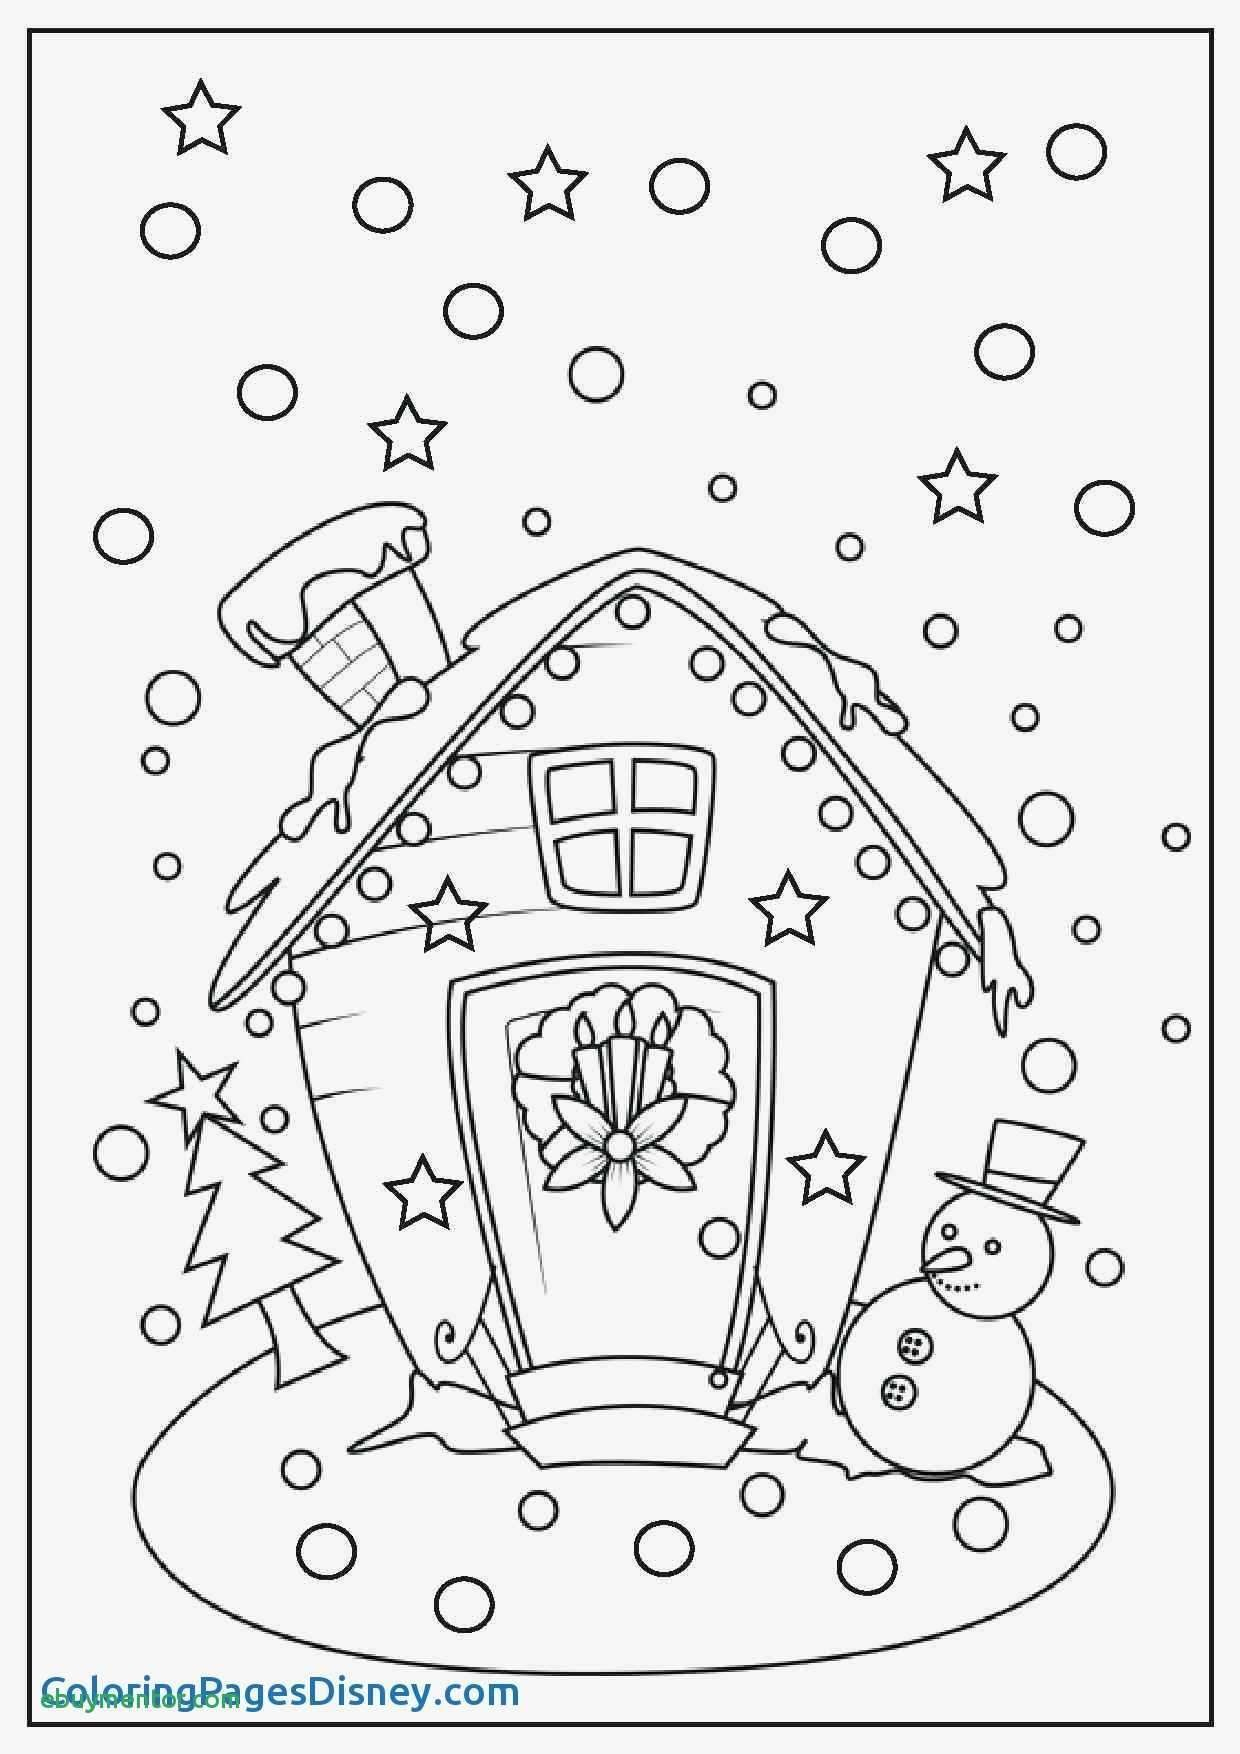 Pink Ribbon Coloring Pages  Collection 4s - Free For kids